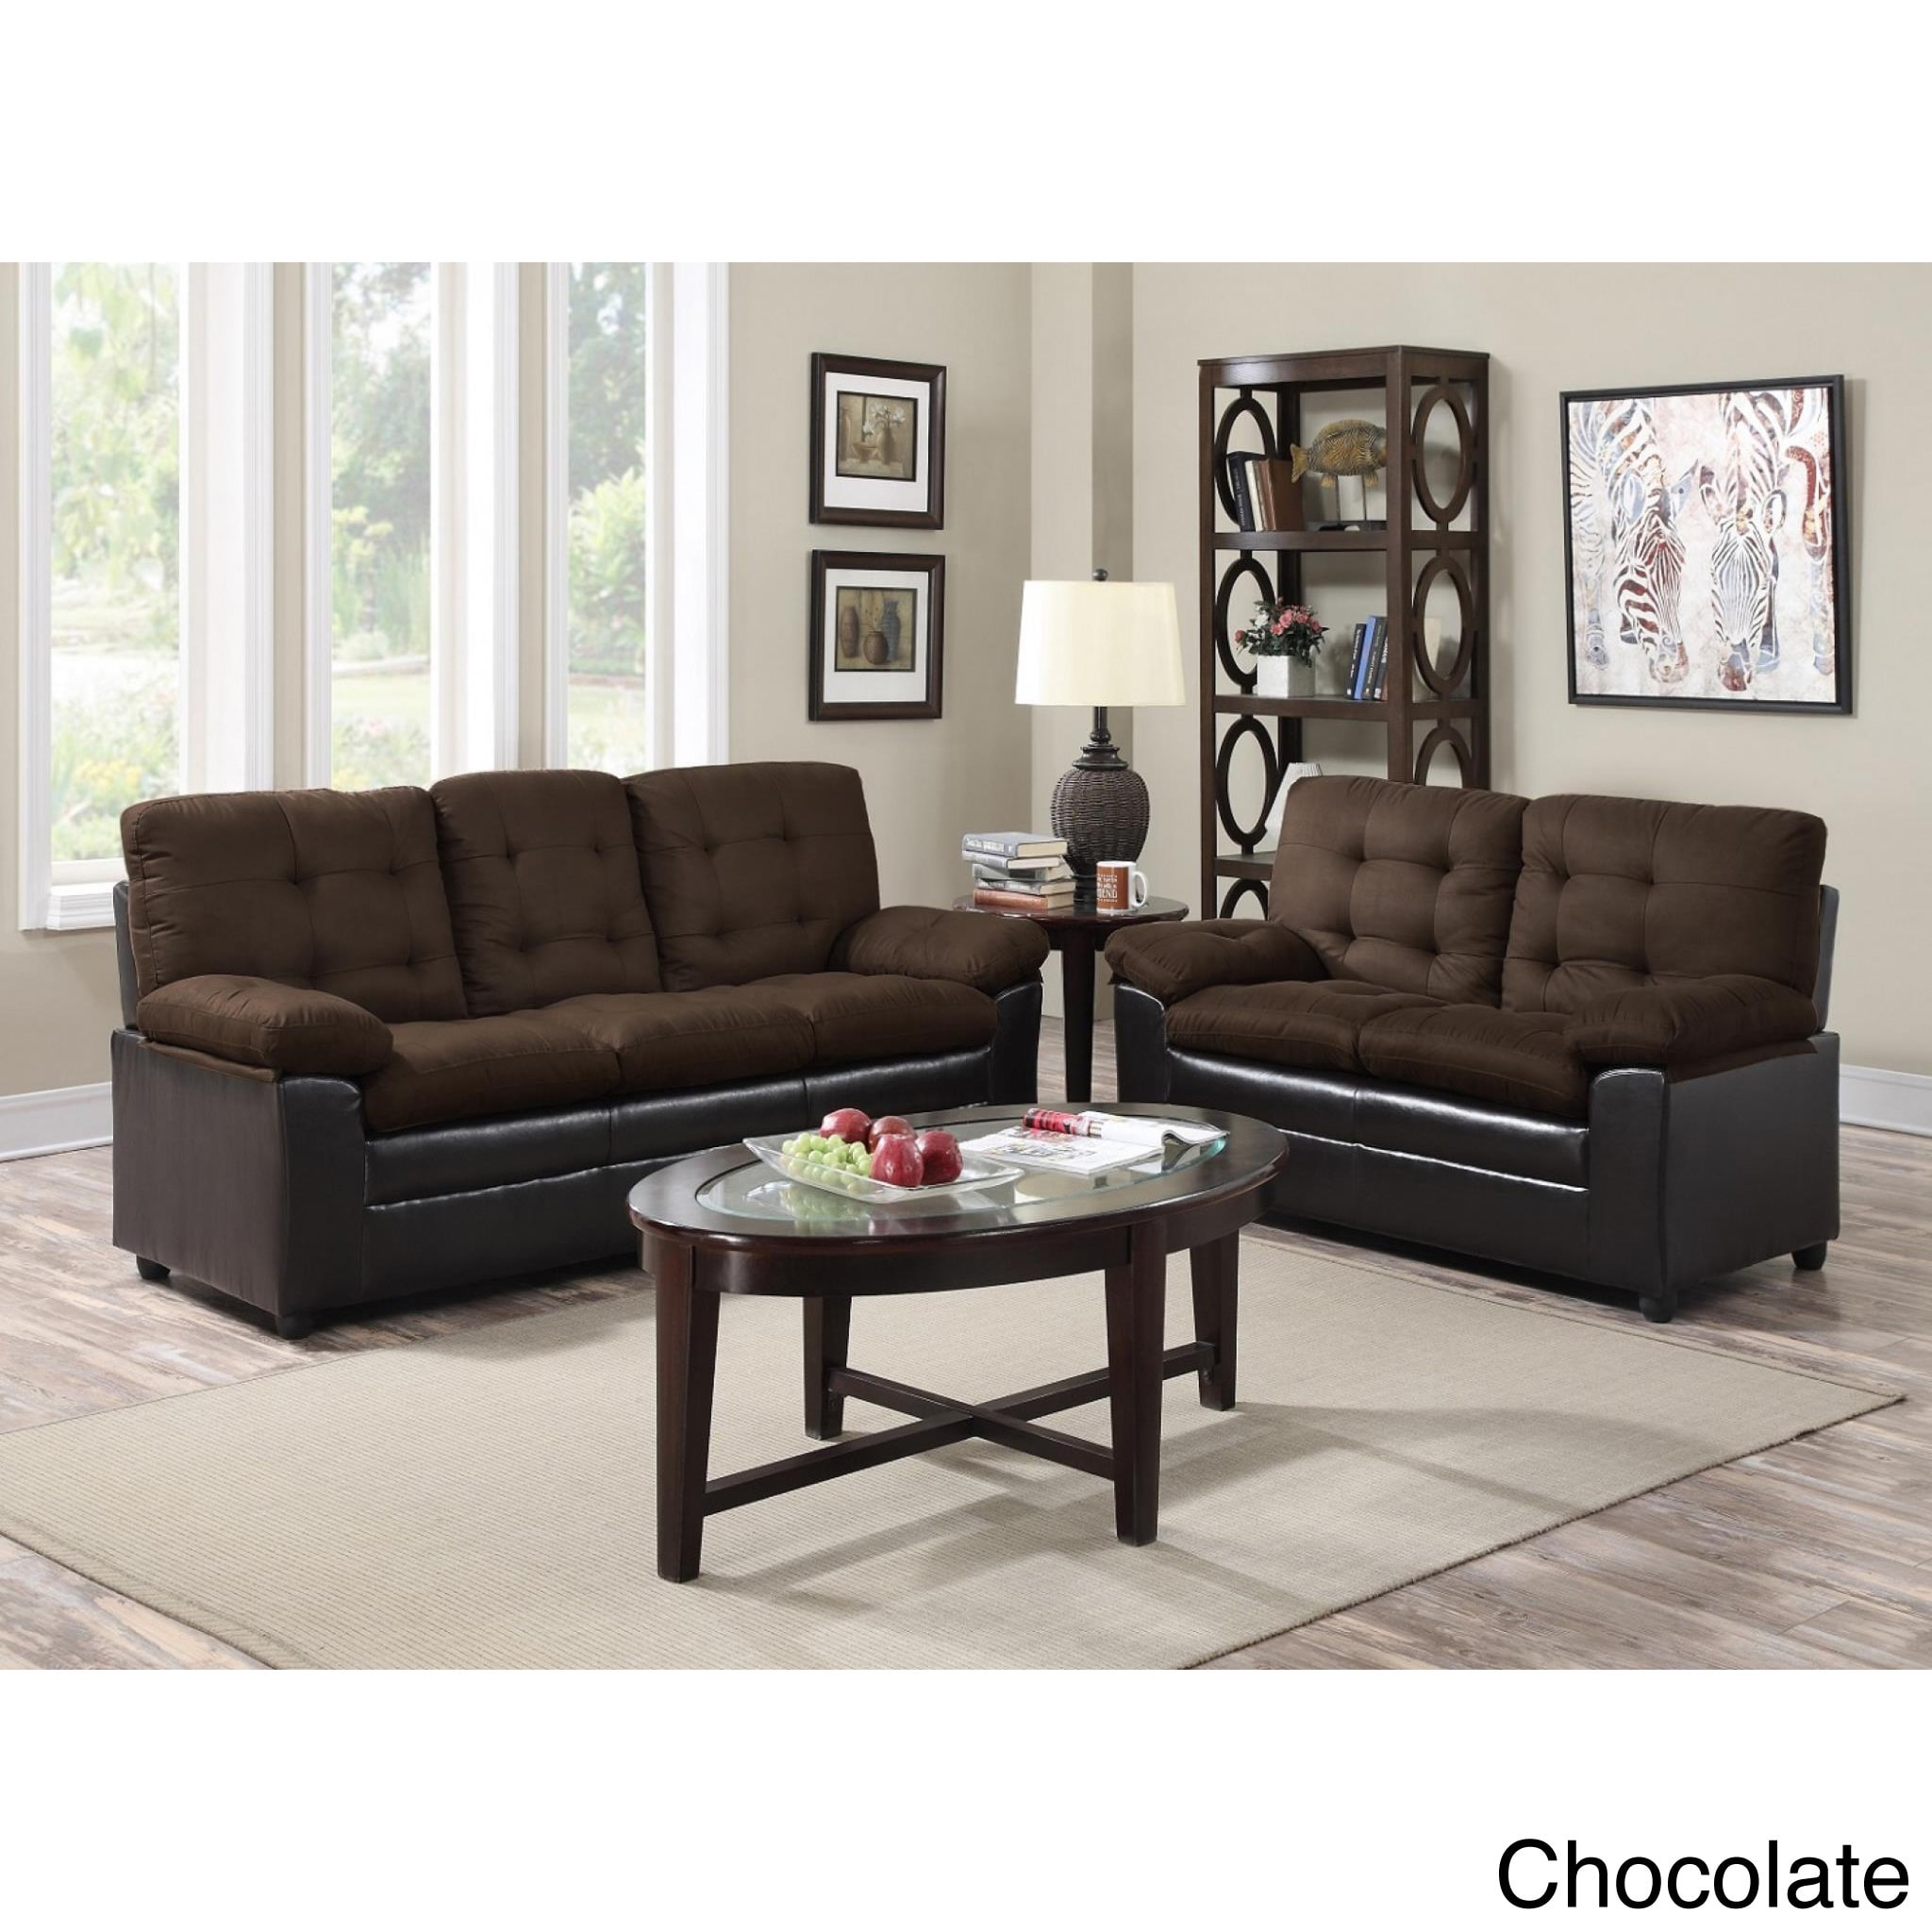 2 Coffee Tables In Living Room